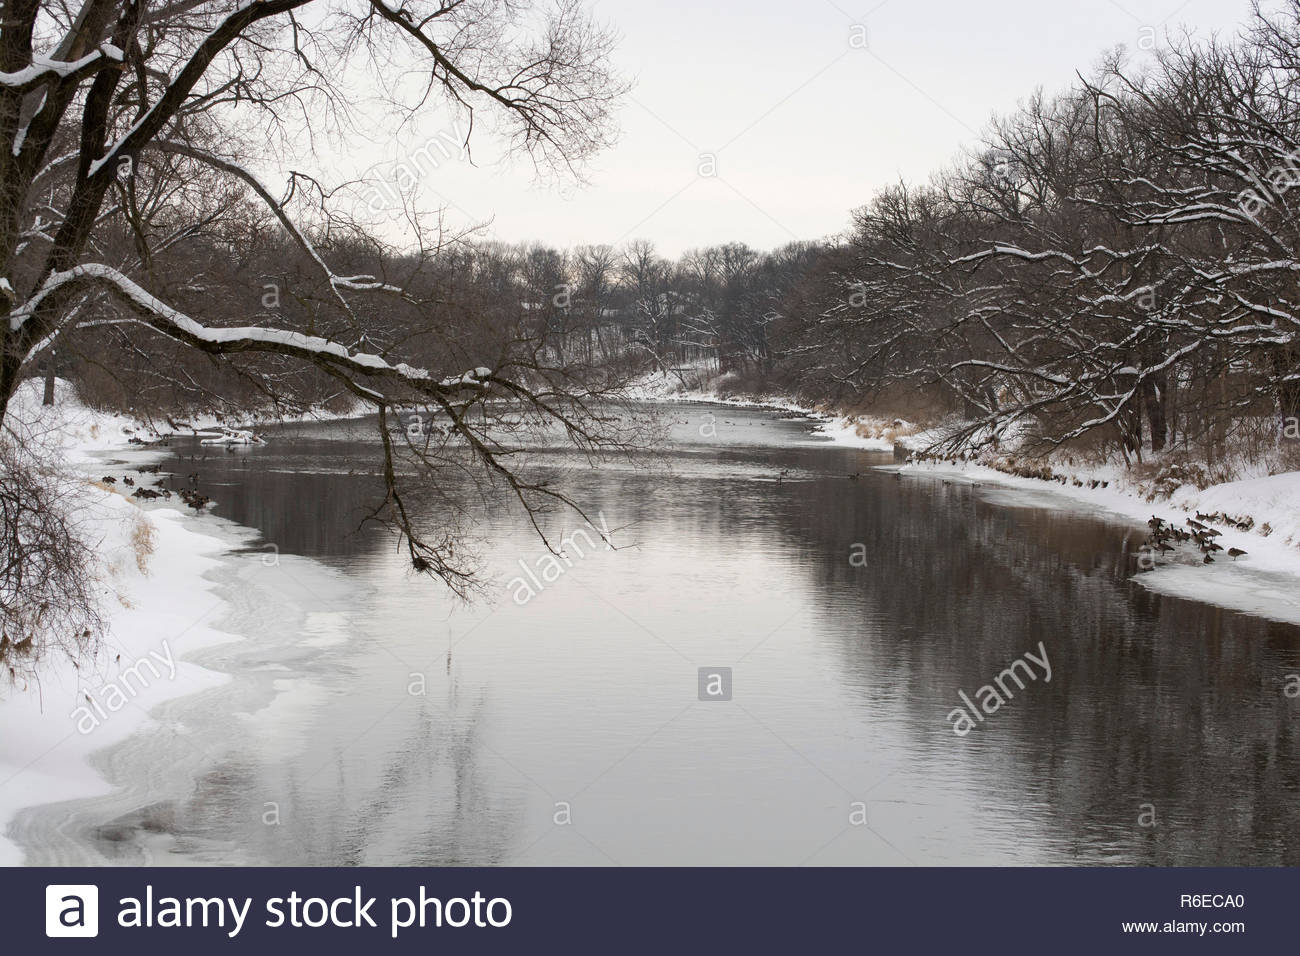 A winter scene in a small town in Illinois, United States. It includes a river lined by trees and numerous Canadian geese at the water's edge. - Stock Image